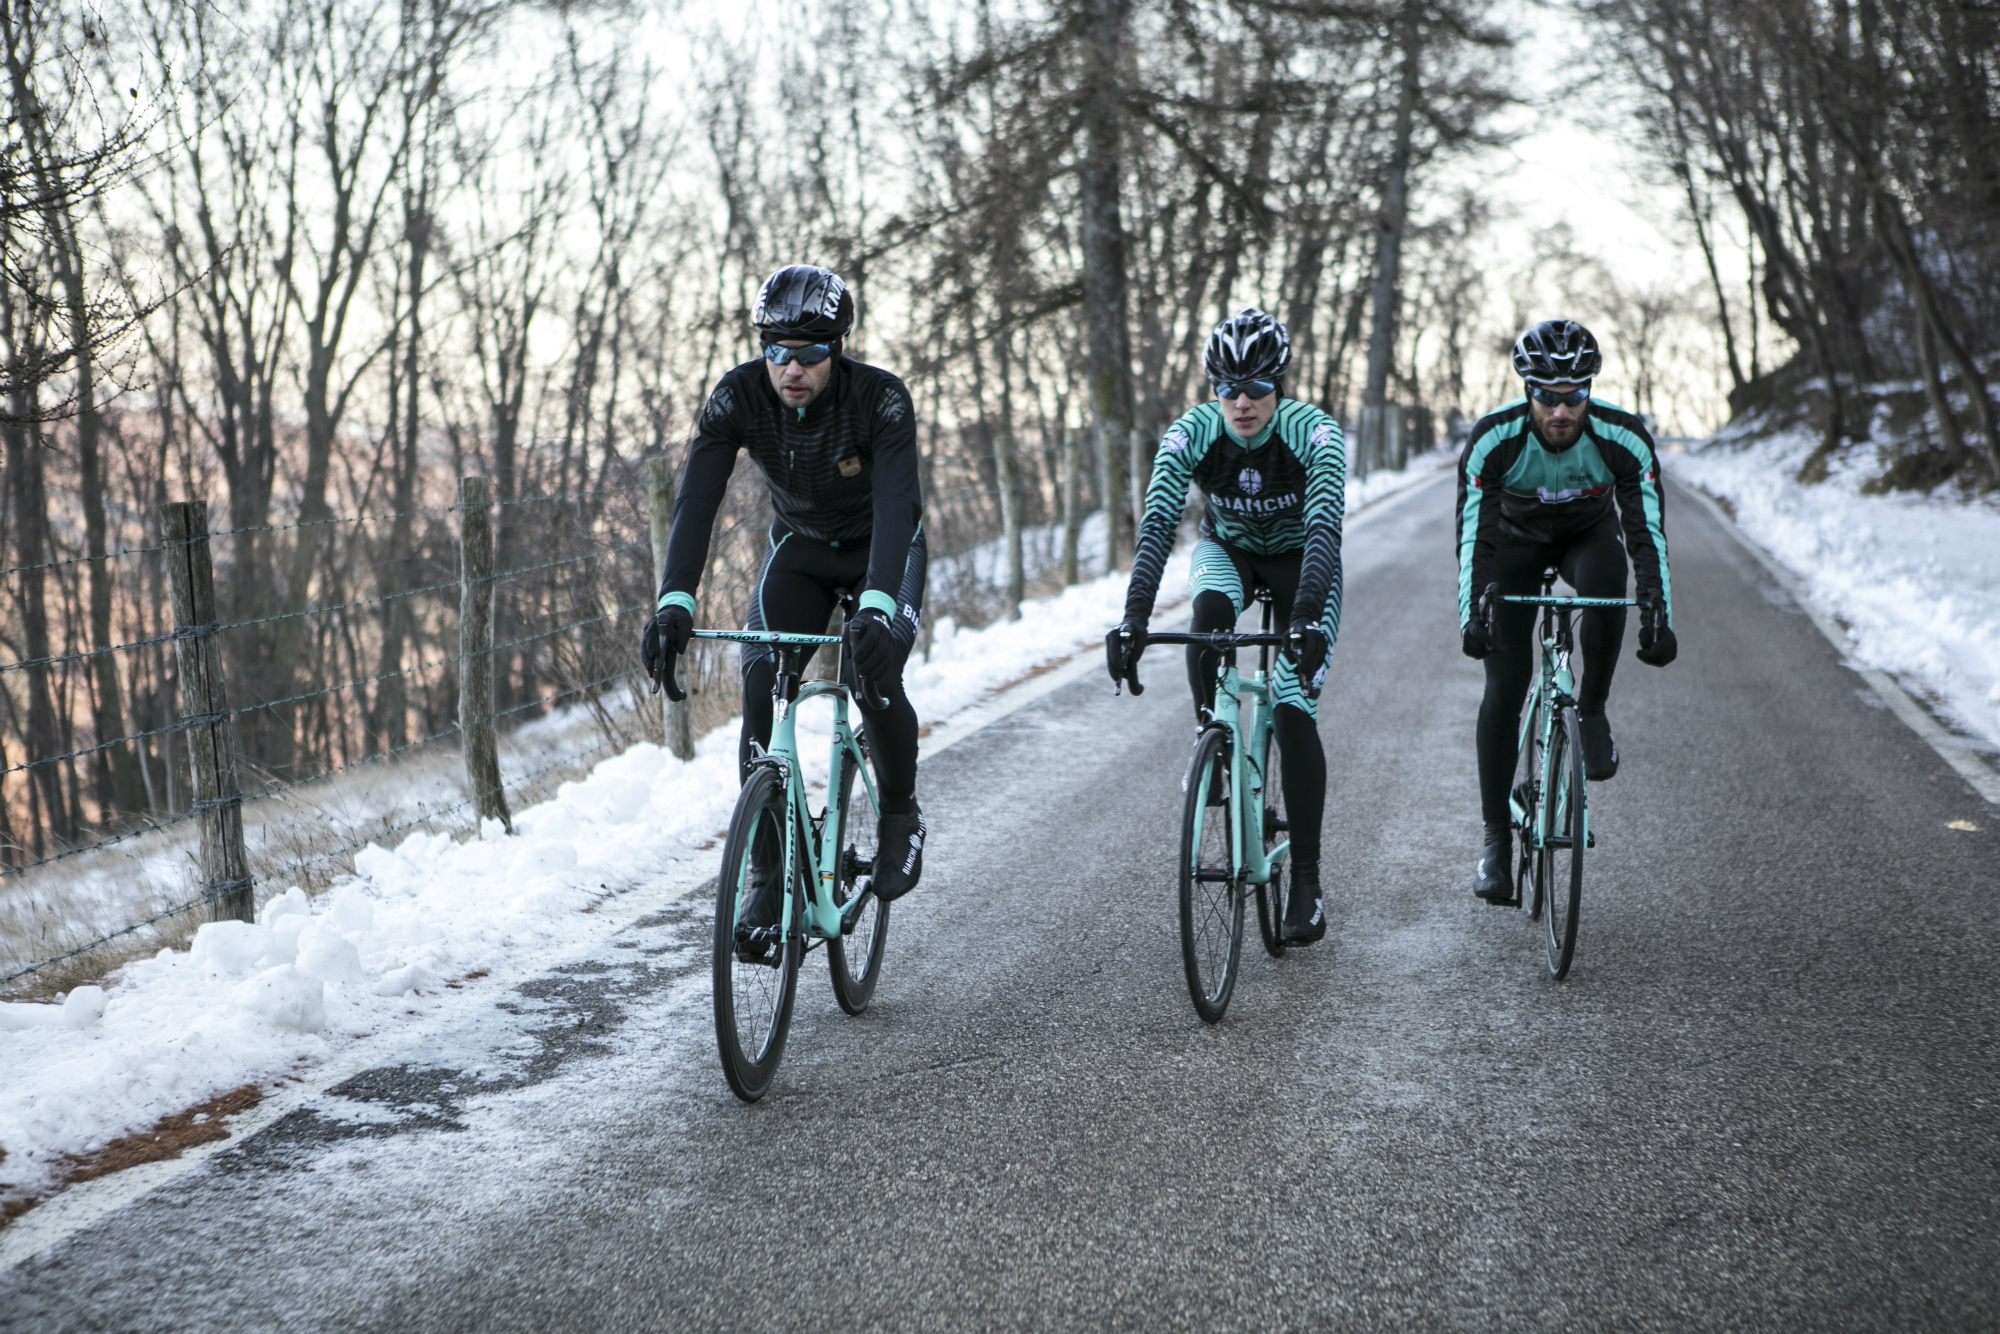 Three cyclists training together in the snow in Bianchi clothing.